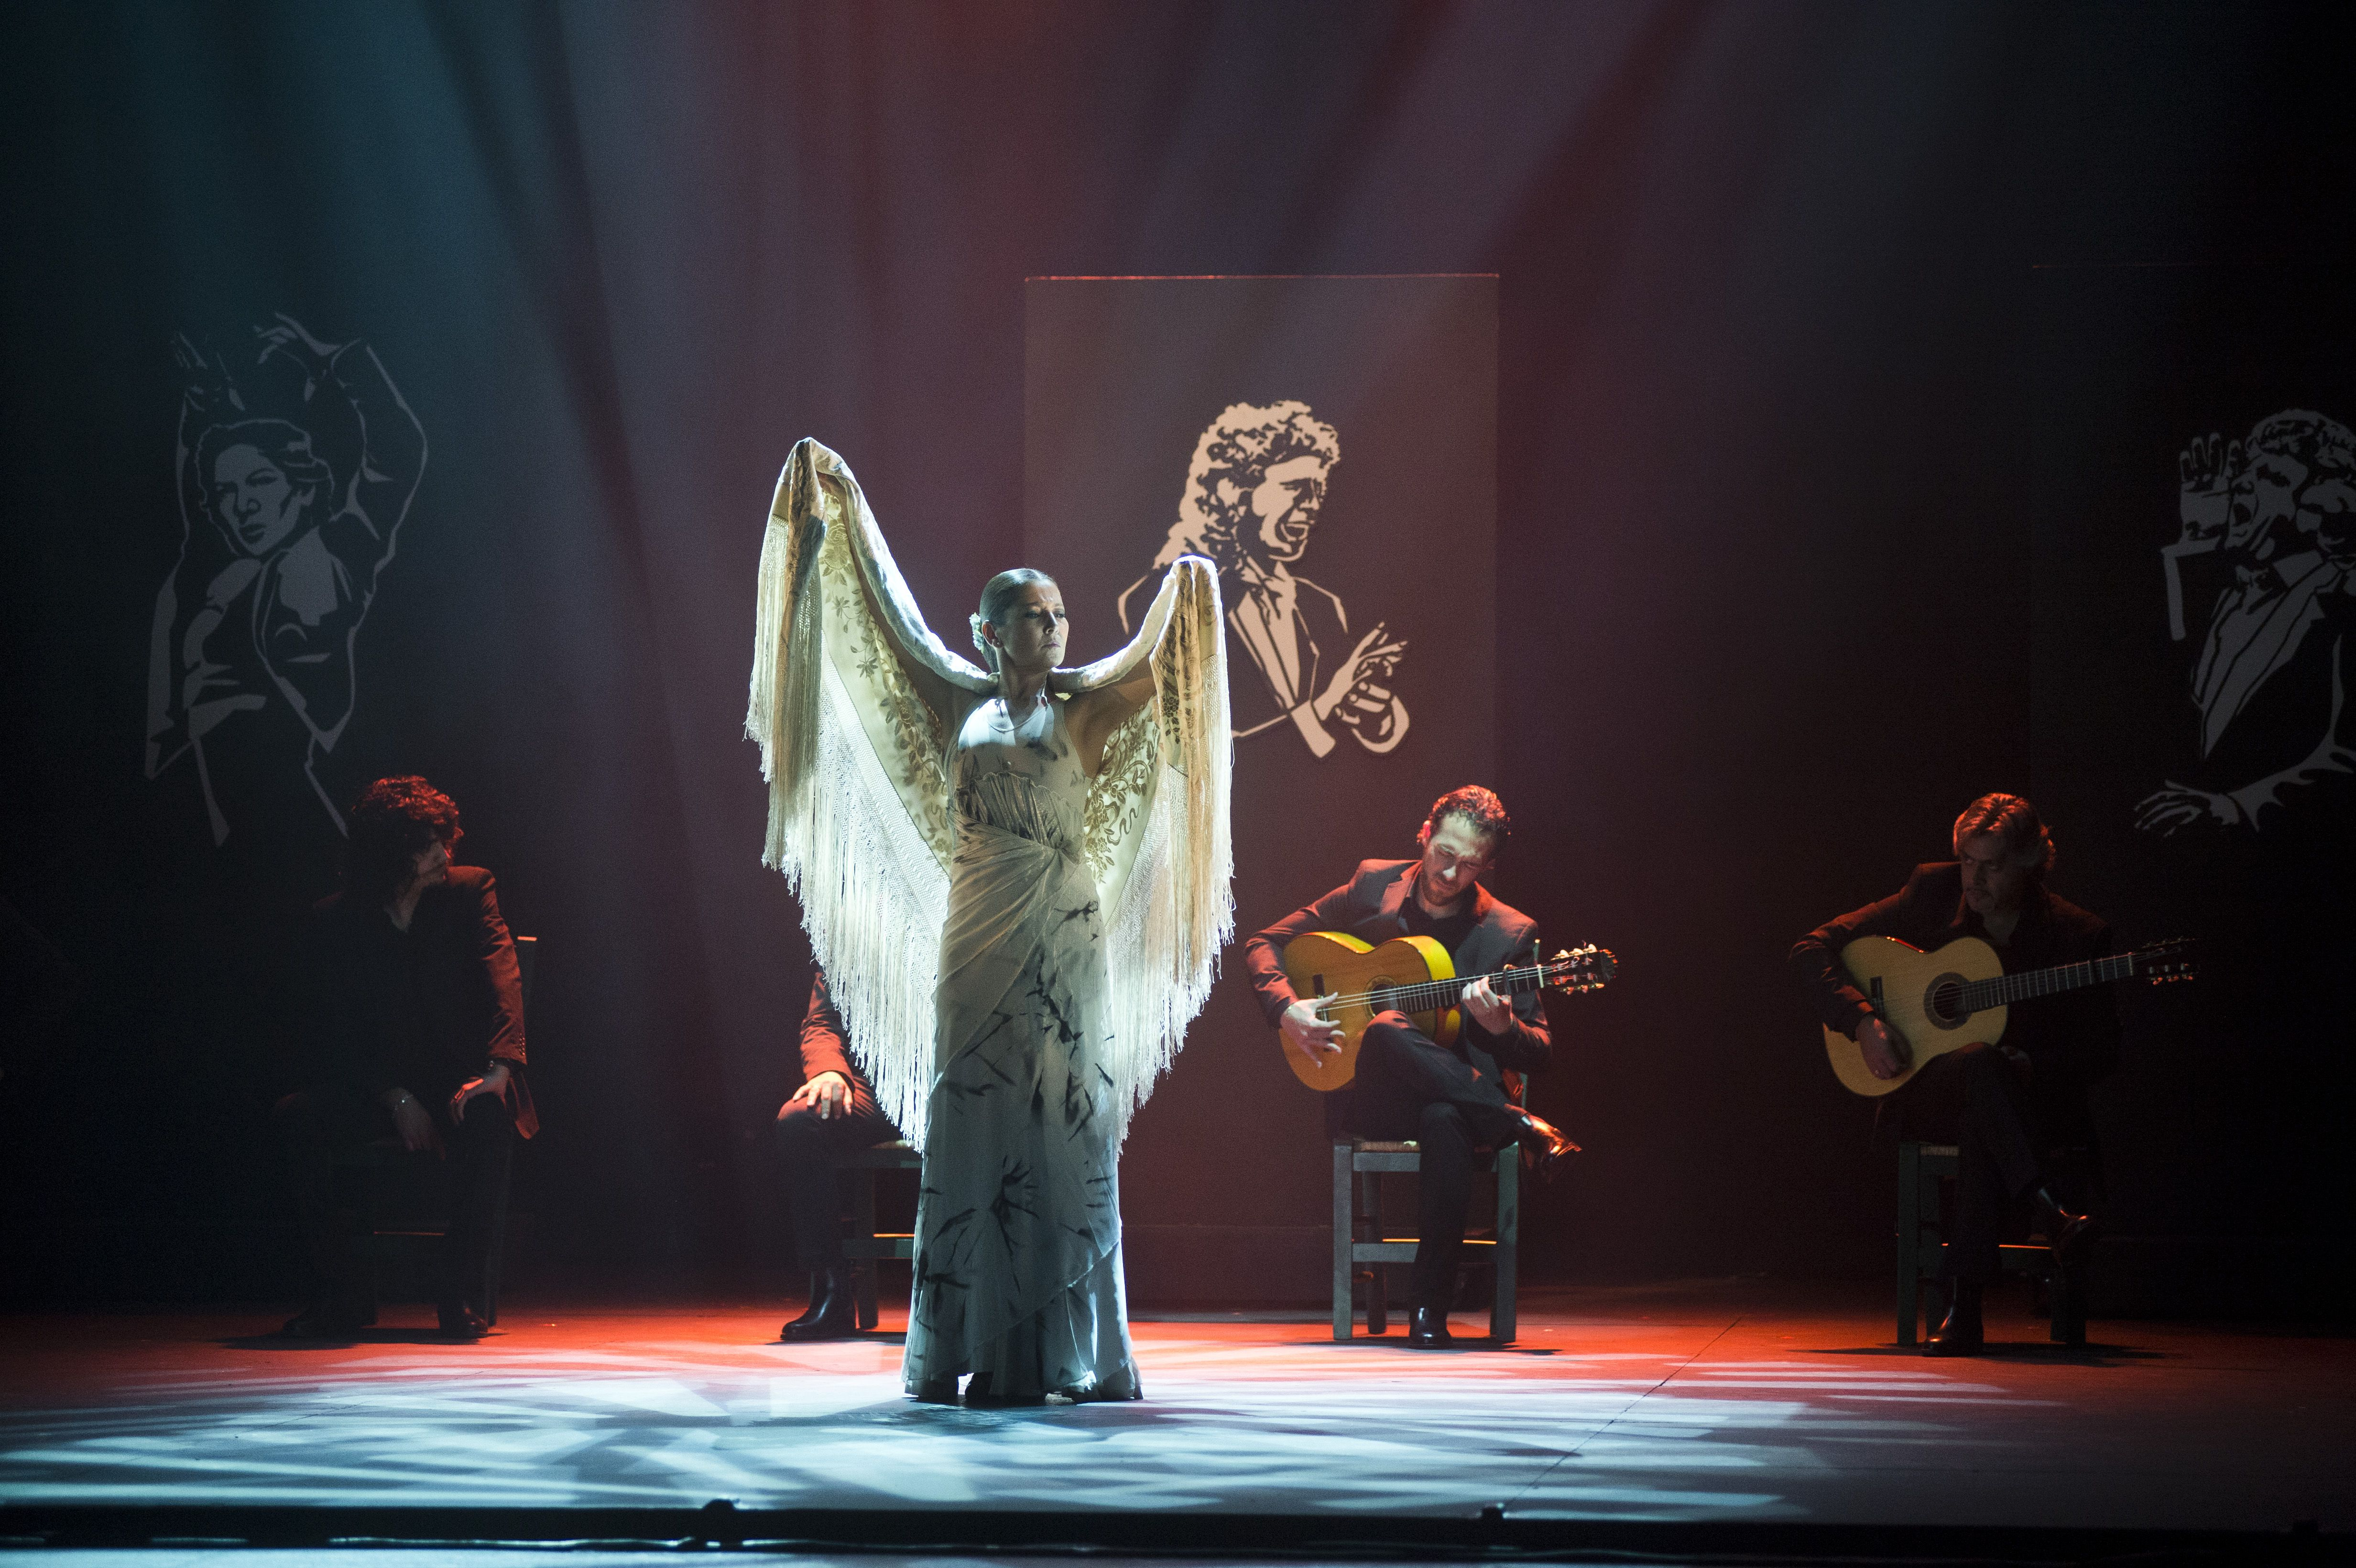 Sara Baras Performs on Stage 'Voces' in Barcelona